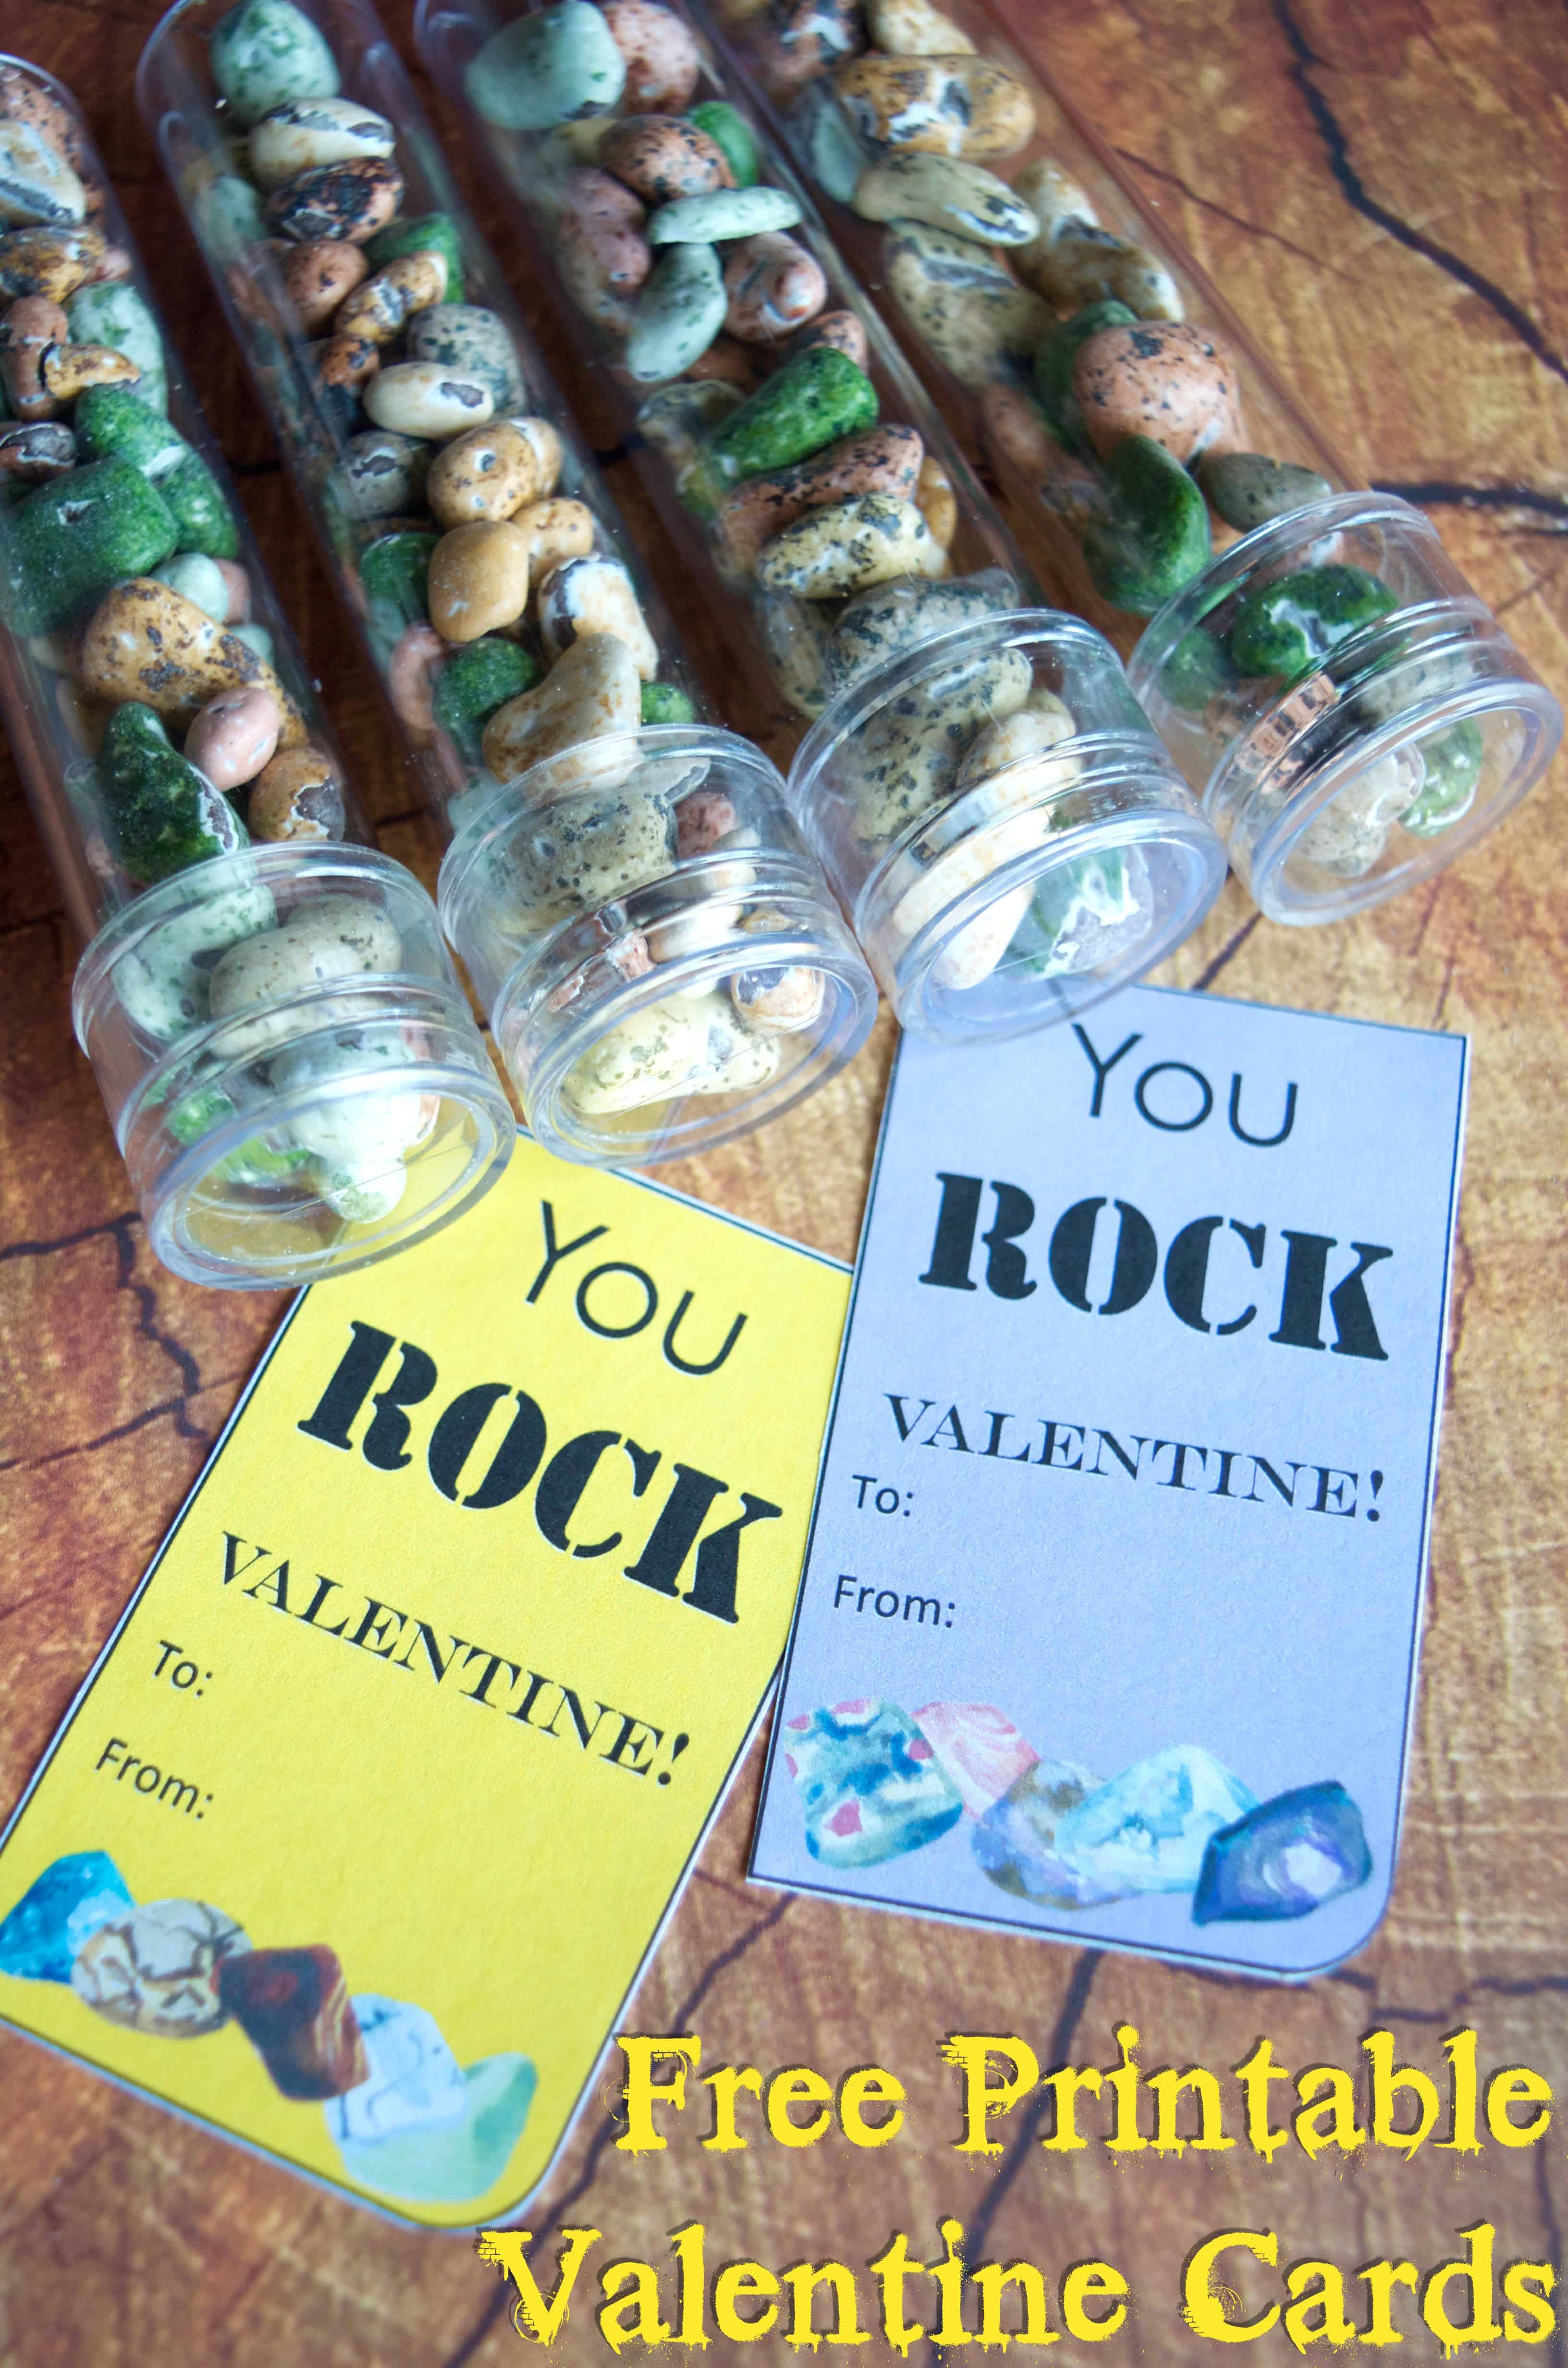 You ROCK! Valentine Printable and Classroom Gift Idea